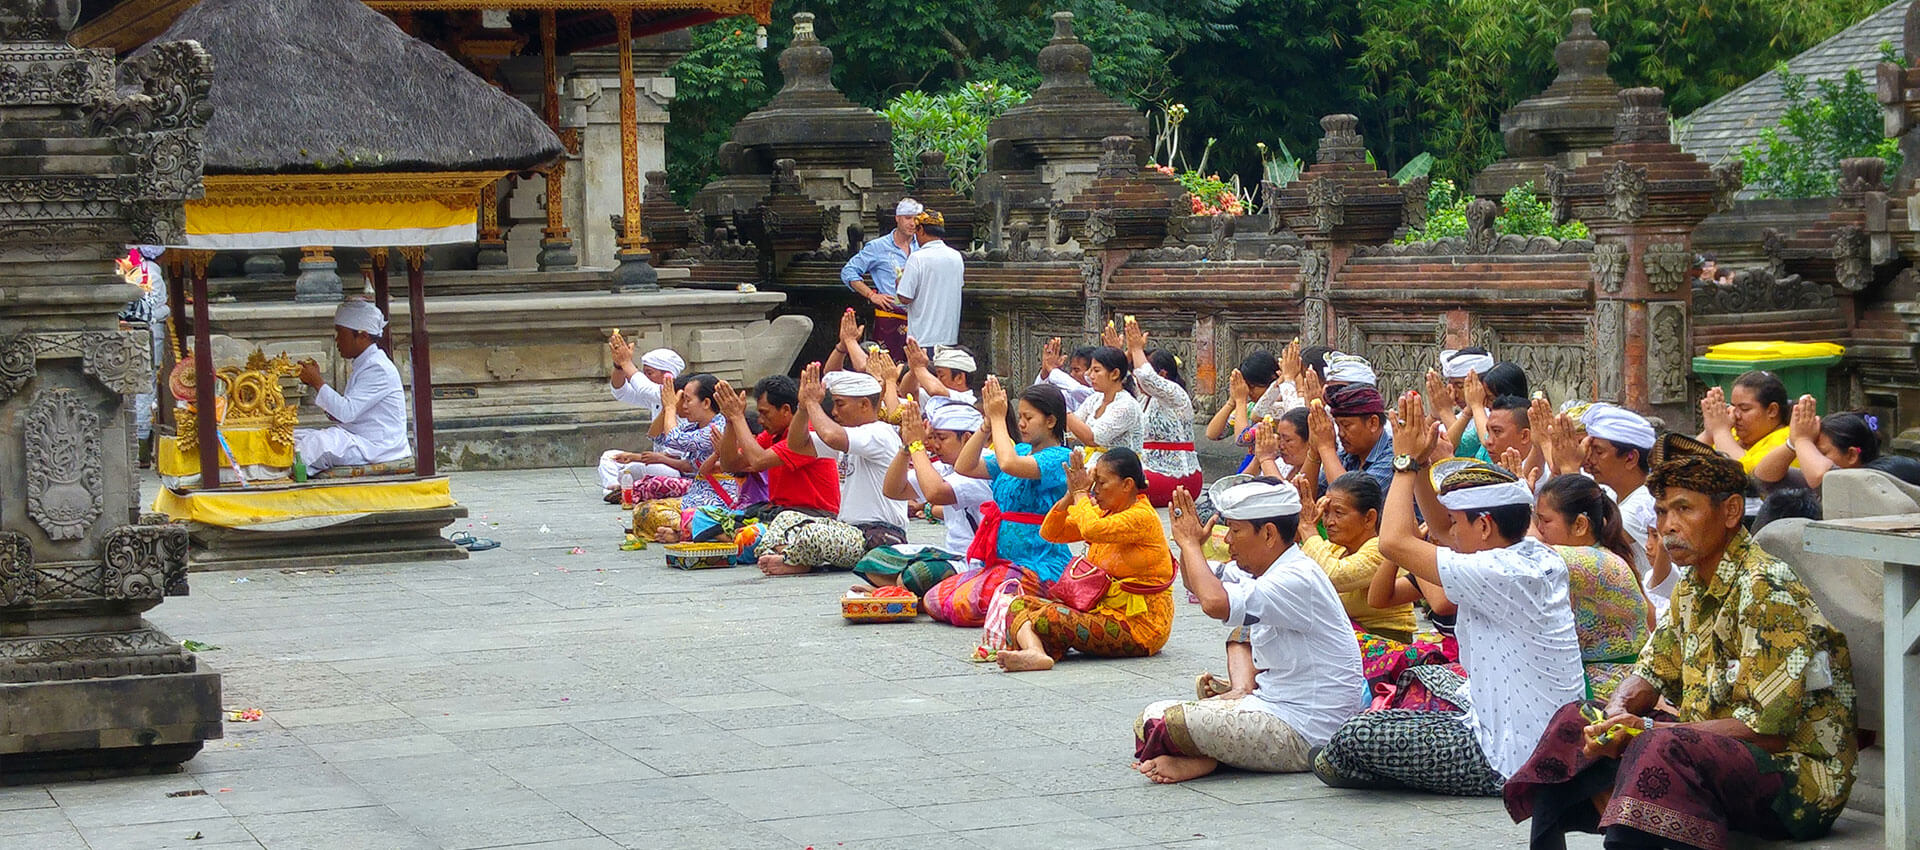 People praying in a Hindu temple in Bali